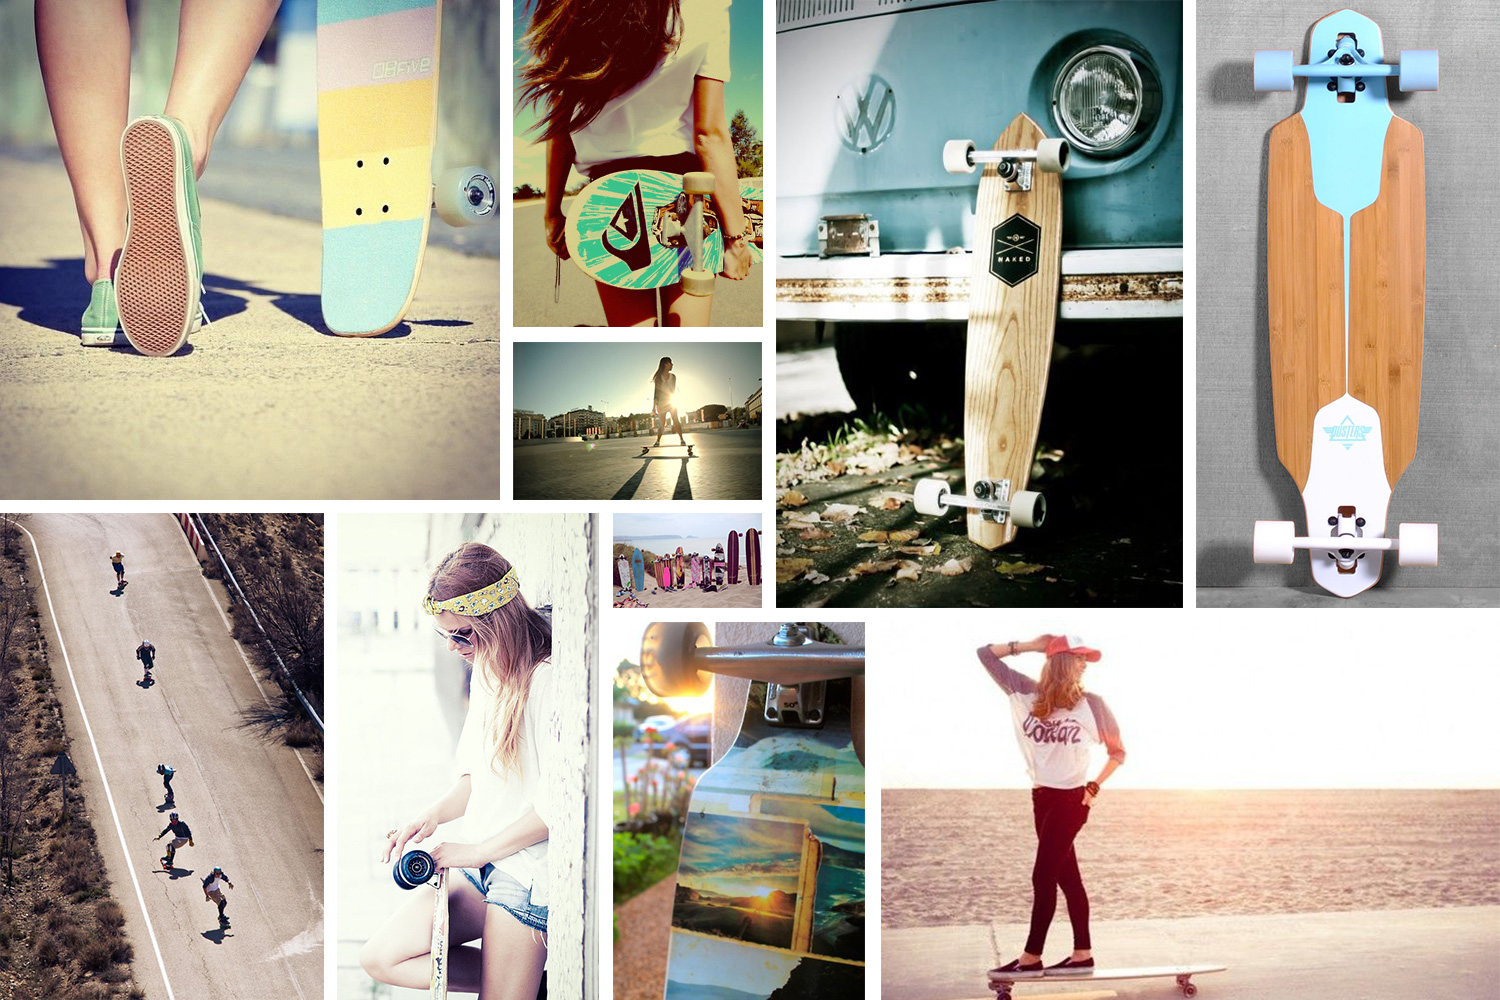 longboard_collage1